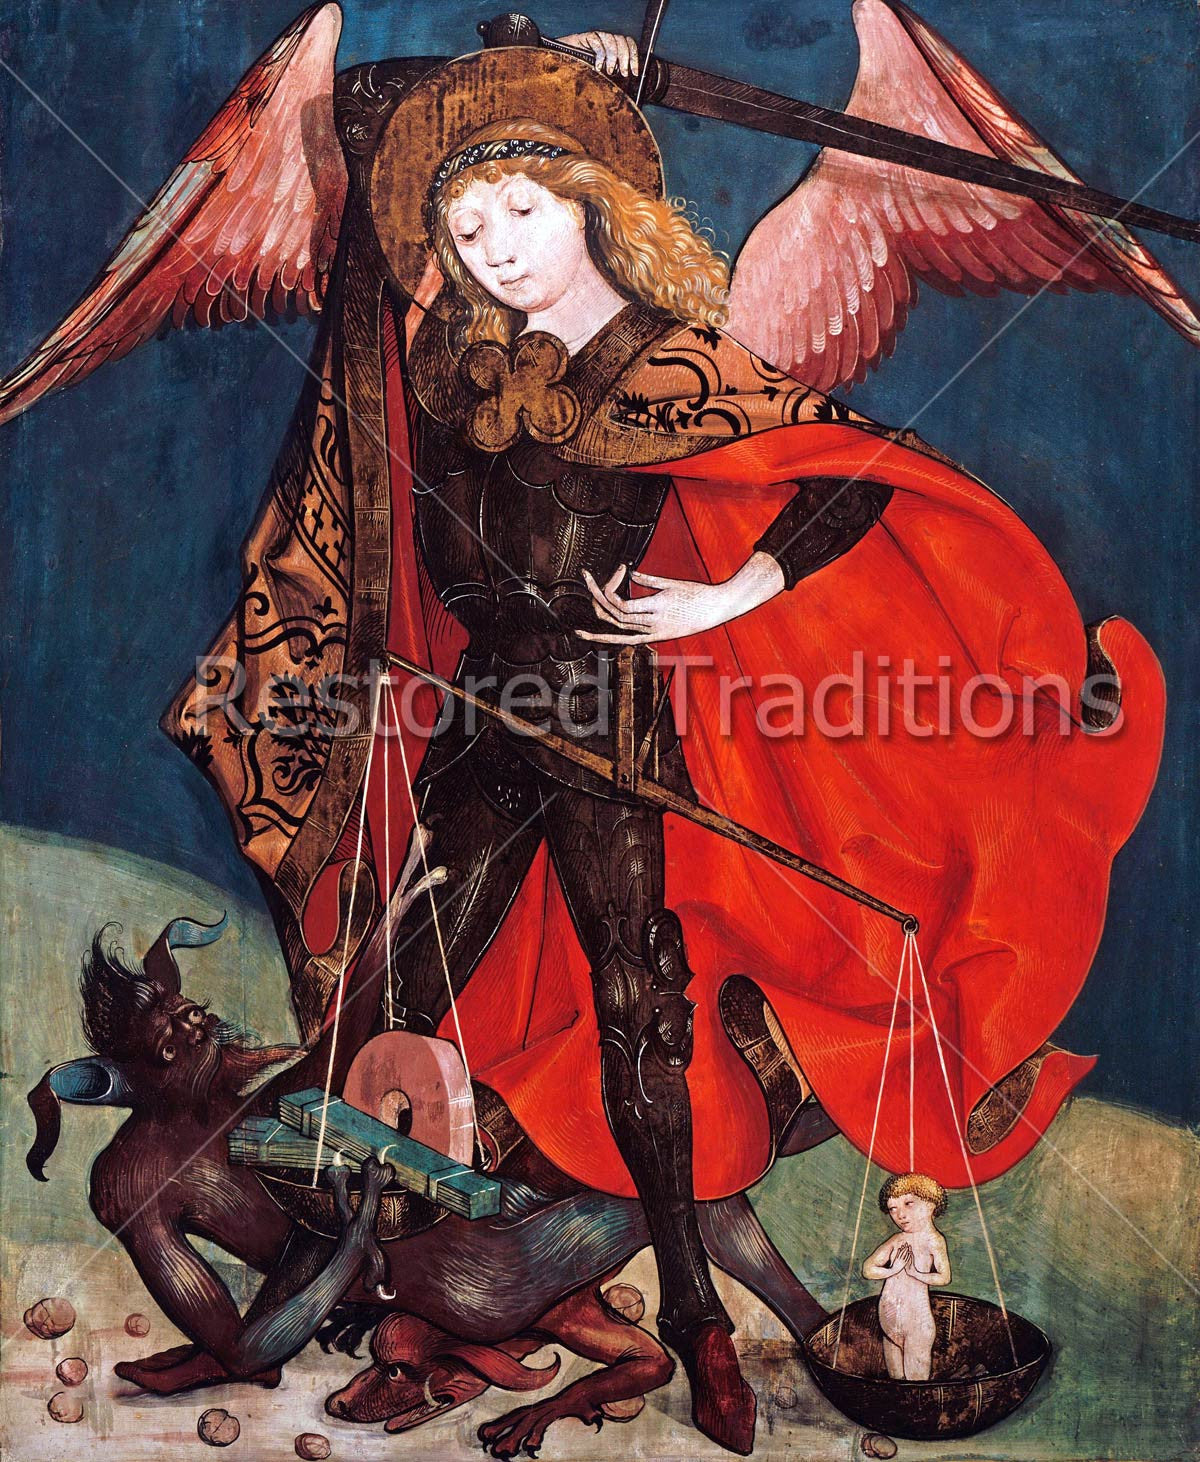 Download Image File: St Michael The Archangel Saving Souls